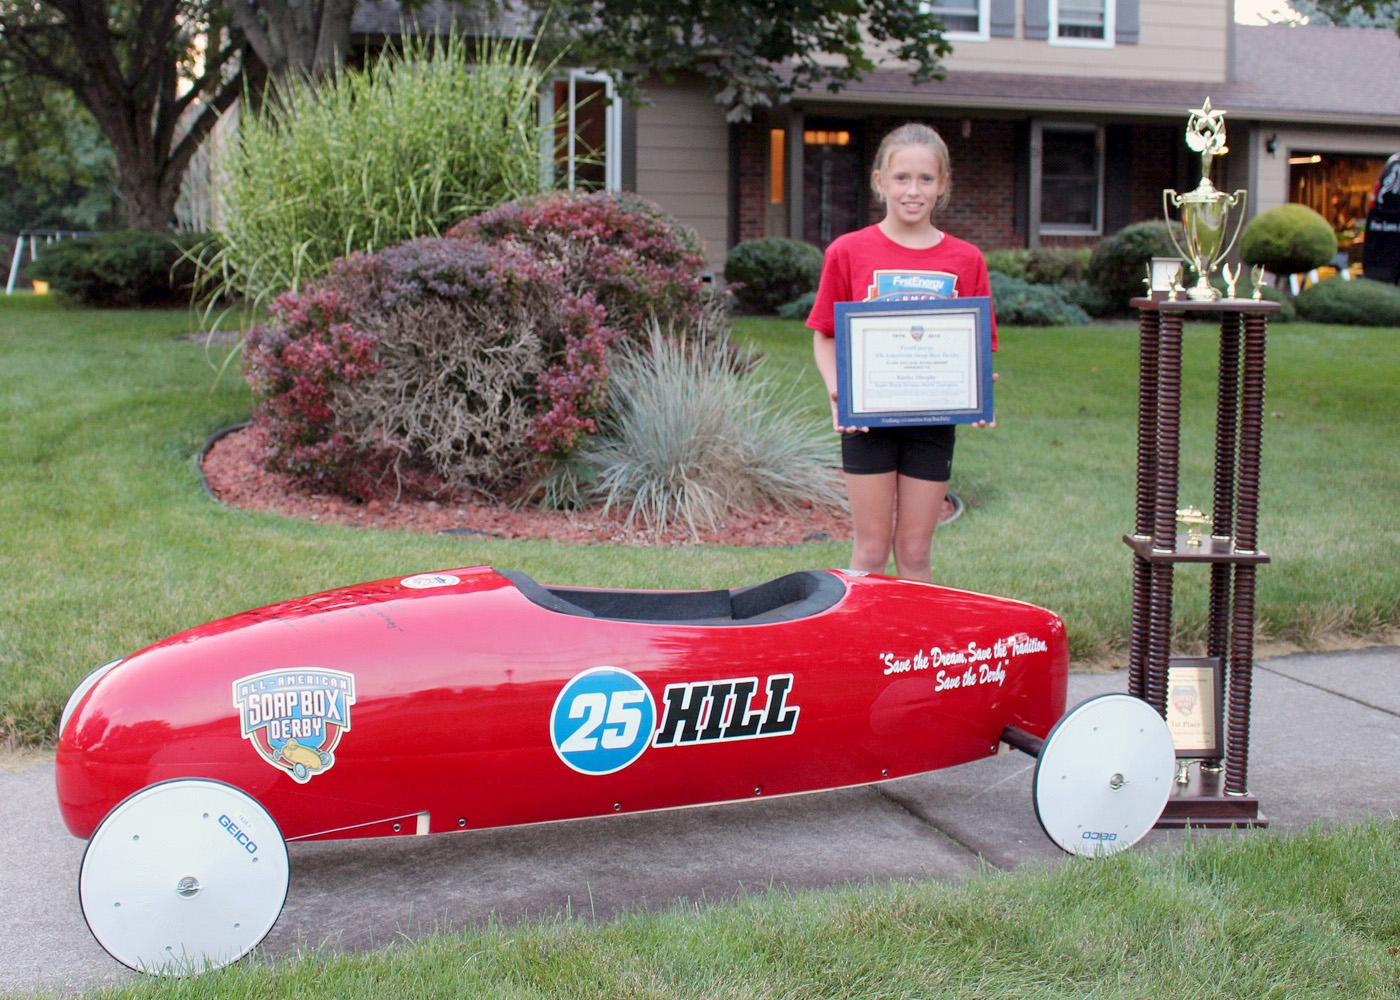 Karlye Murphy, a fifth grader at Village Elementary School in Hilton, received a $3,000 scholarship, World Championship ring, Gold World Championship jacket and a giant trophy for placing first at the World Championship Soap Box Derby Super Stock Race in Akron, OH. The car shown is not the car she raced. That is now on display in the museum at Derby Downs. G. Griffee photo